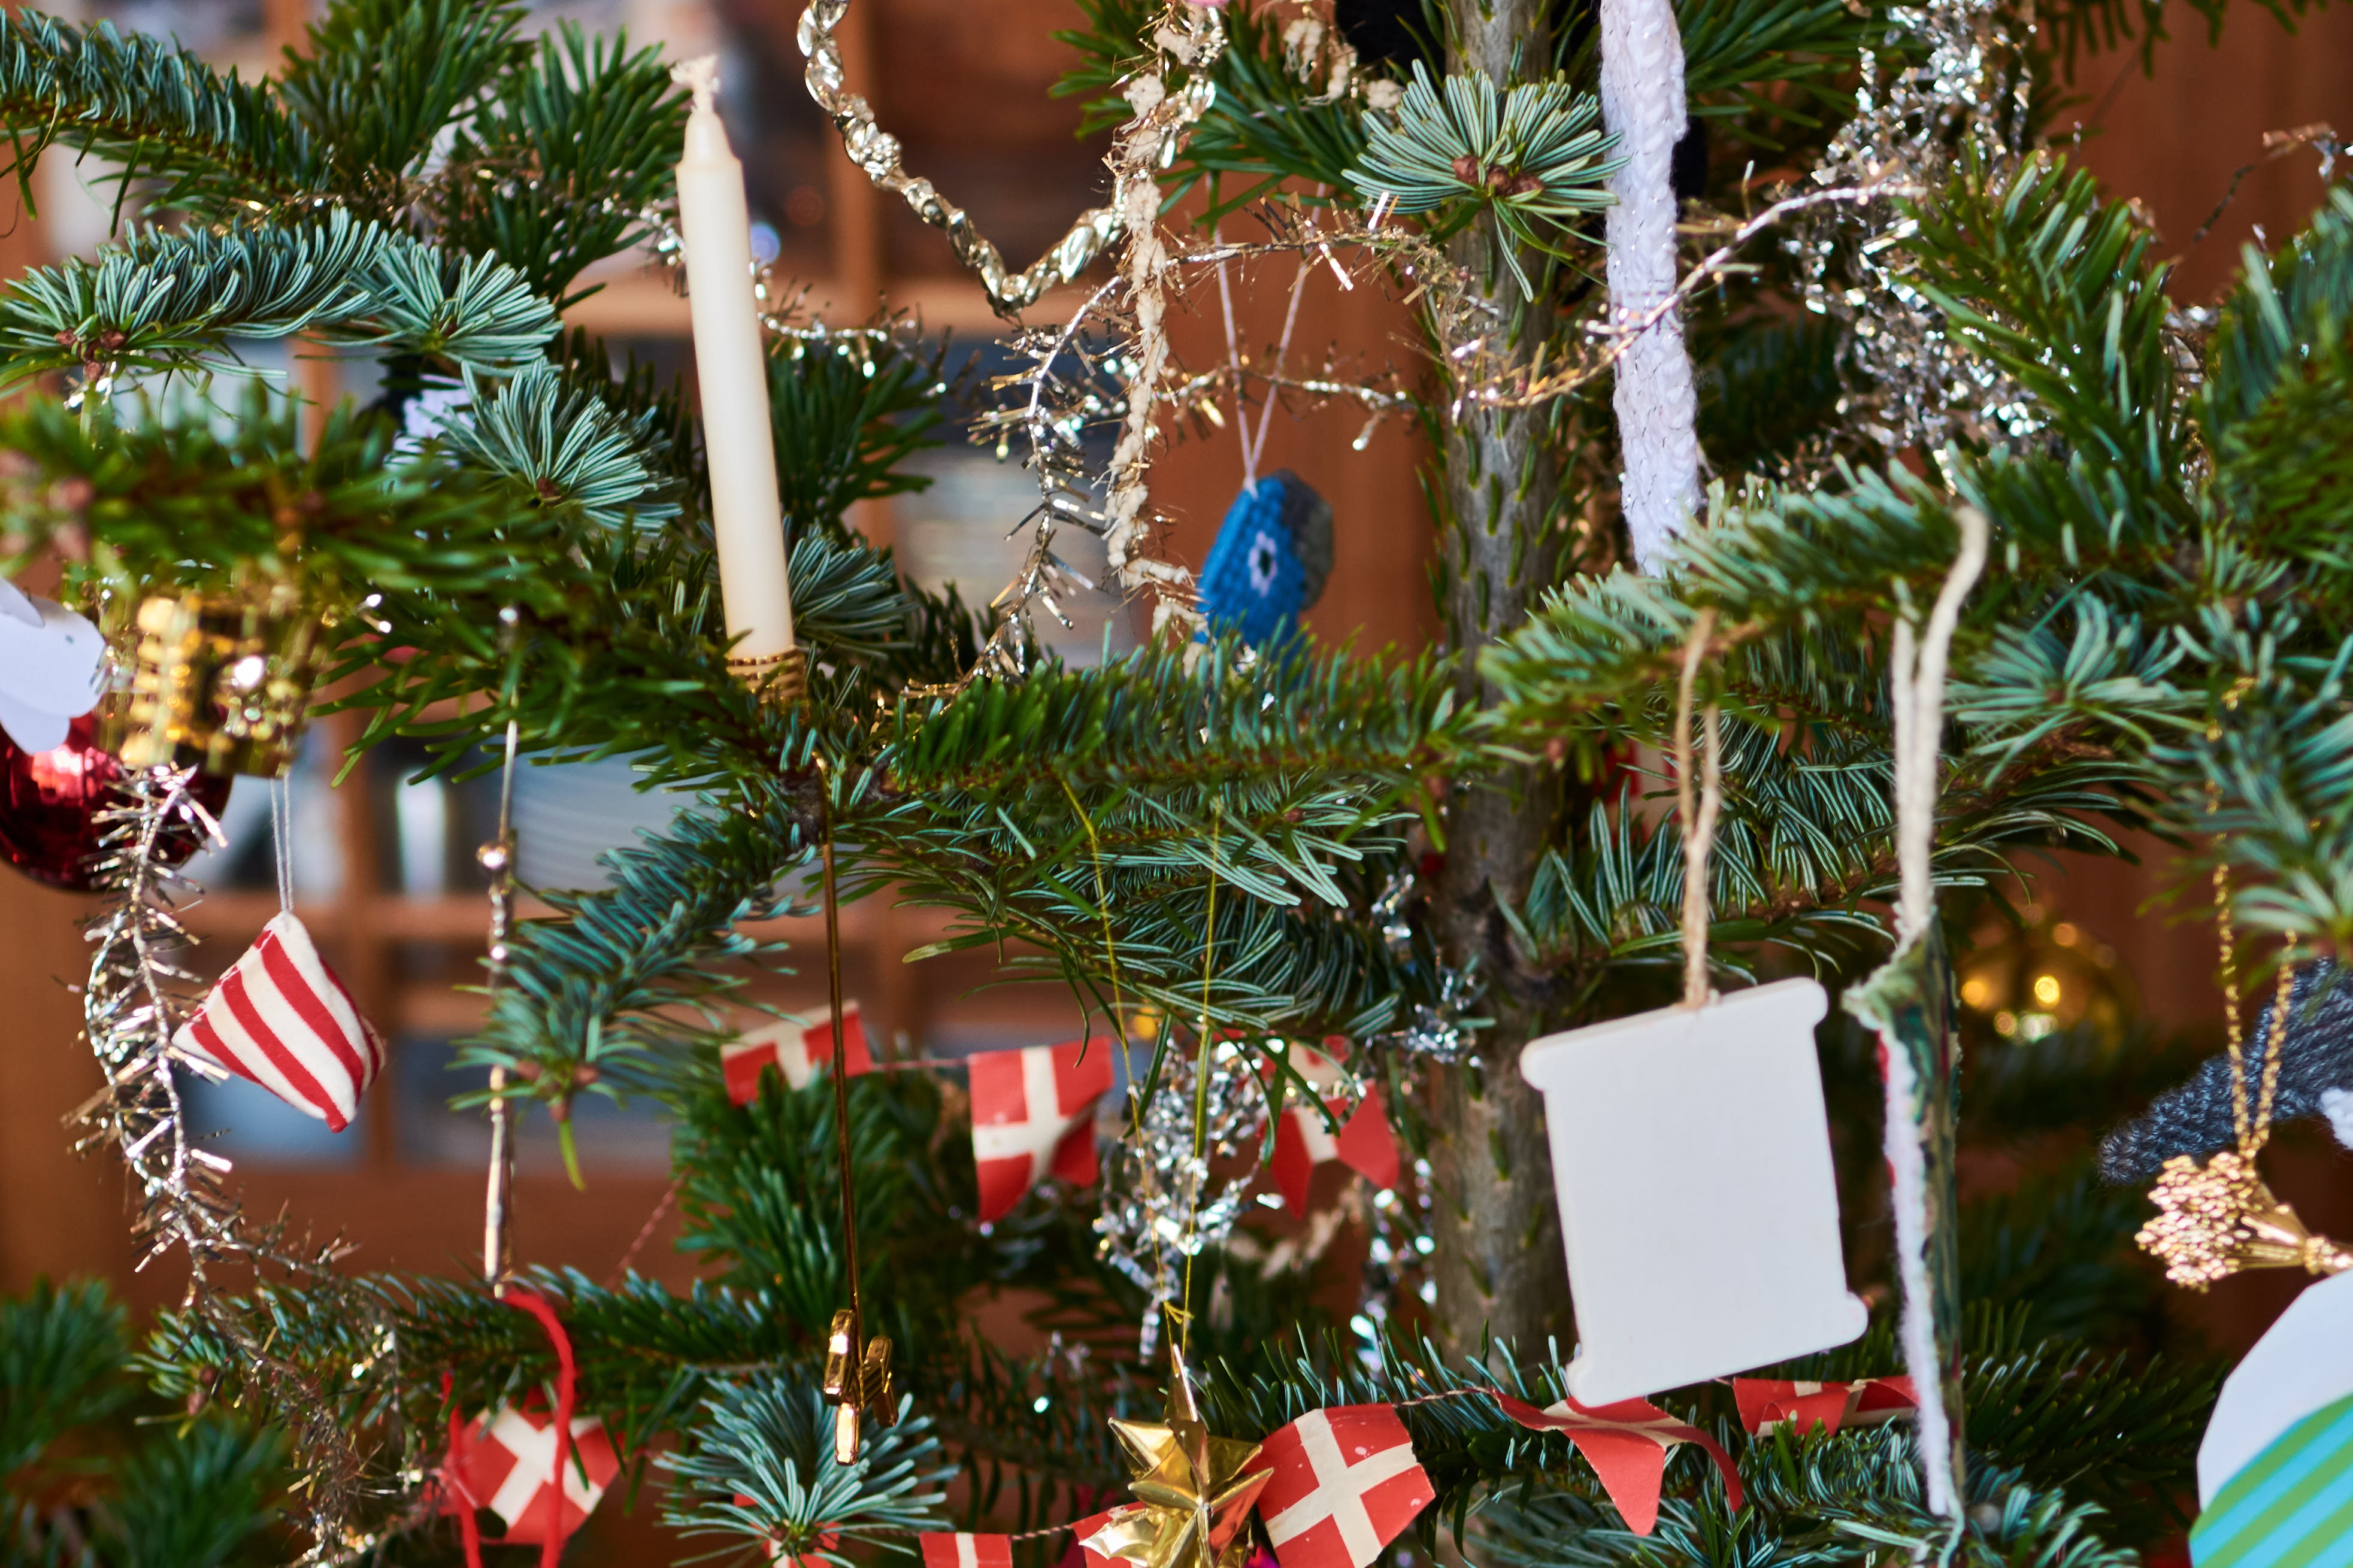 Passion for Testing and the Need for 'Julehygge'